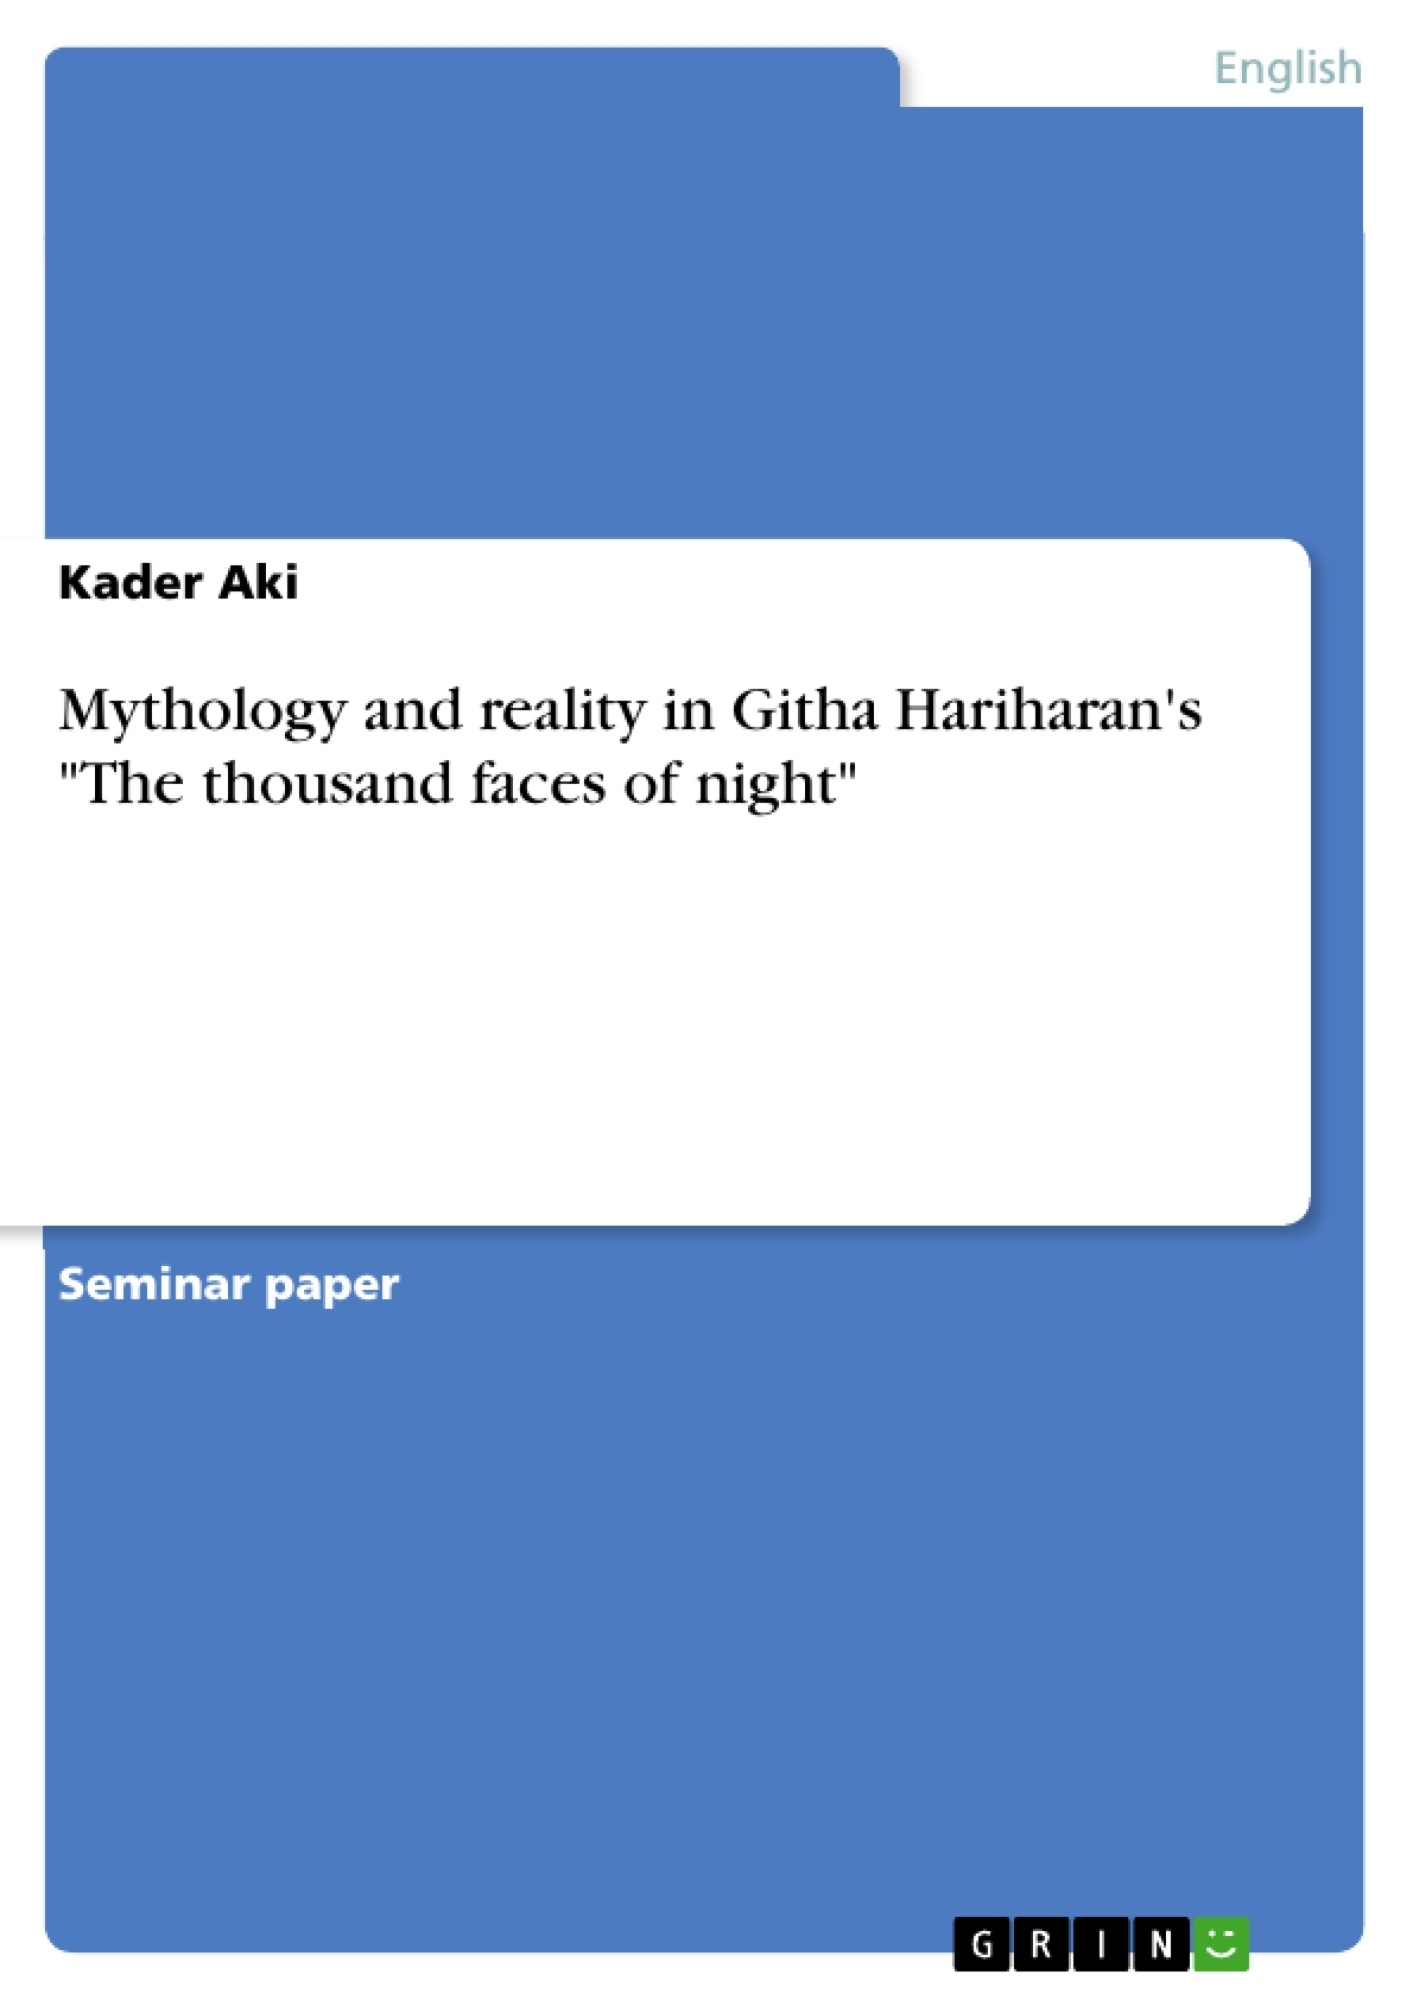 Thesis on githa hariharan